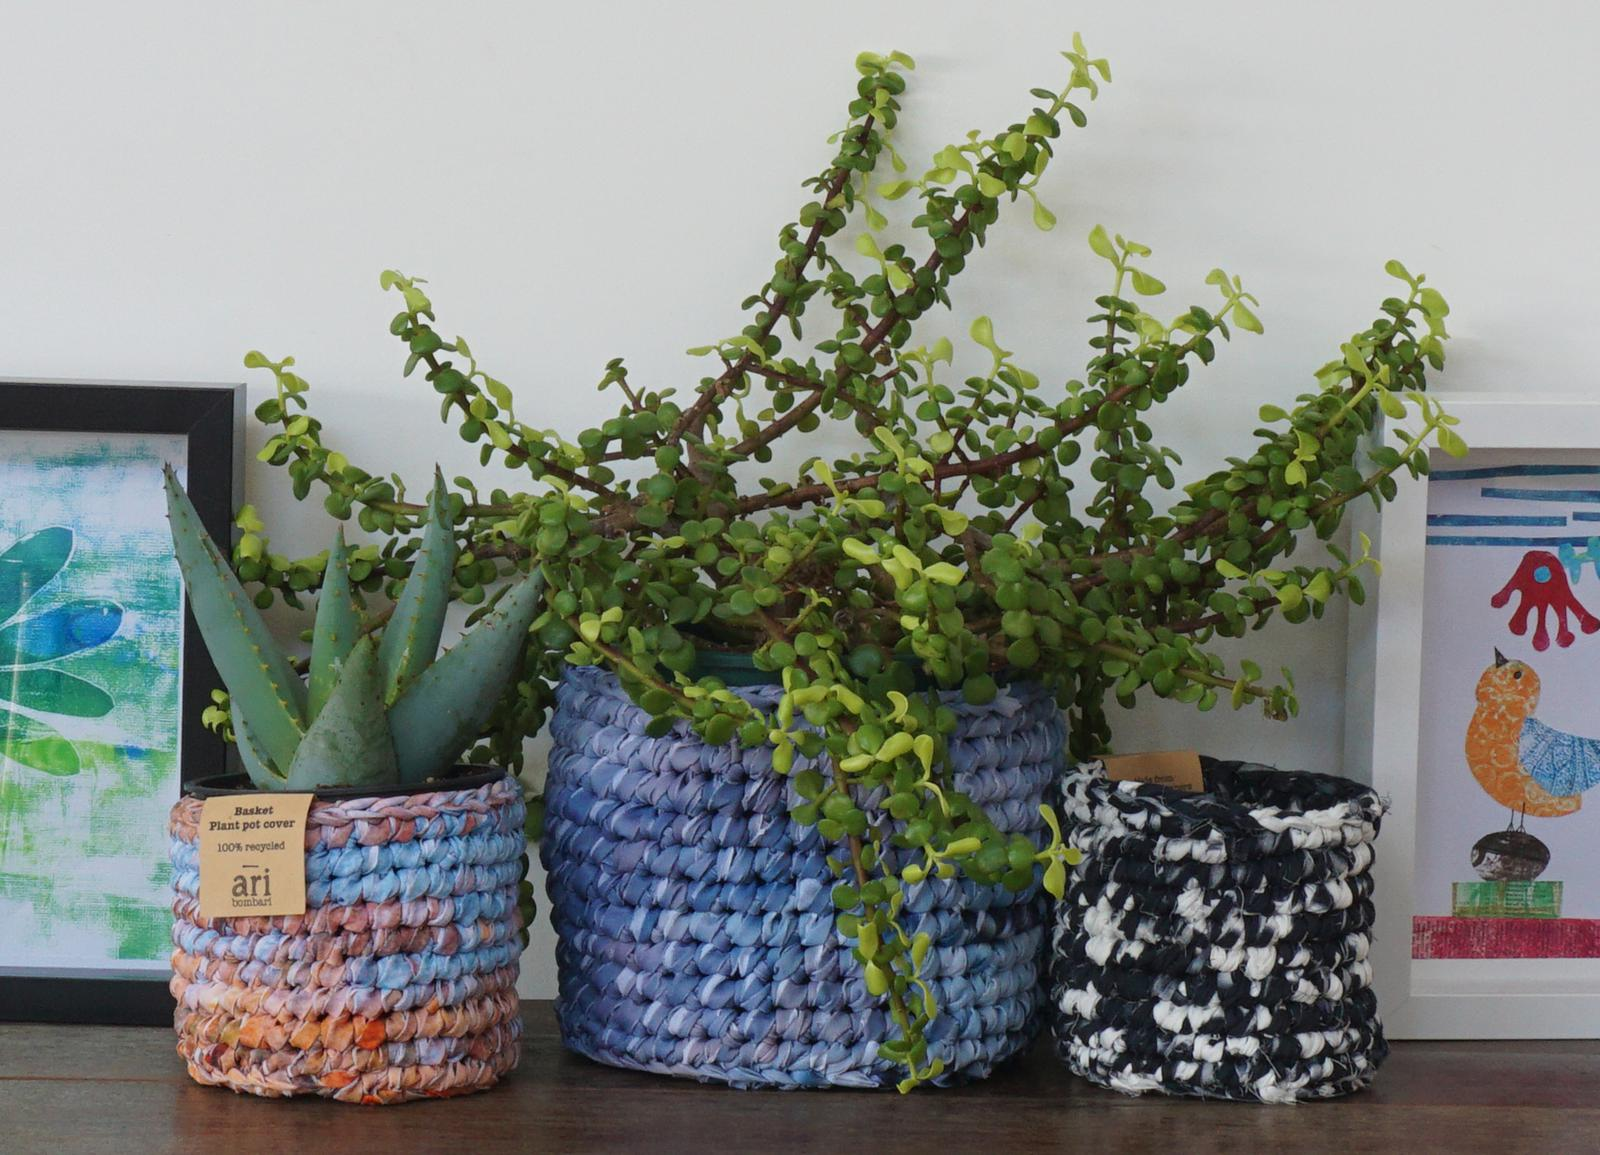 Recycled baskets and plant pot holders